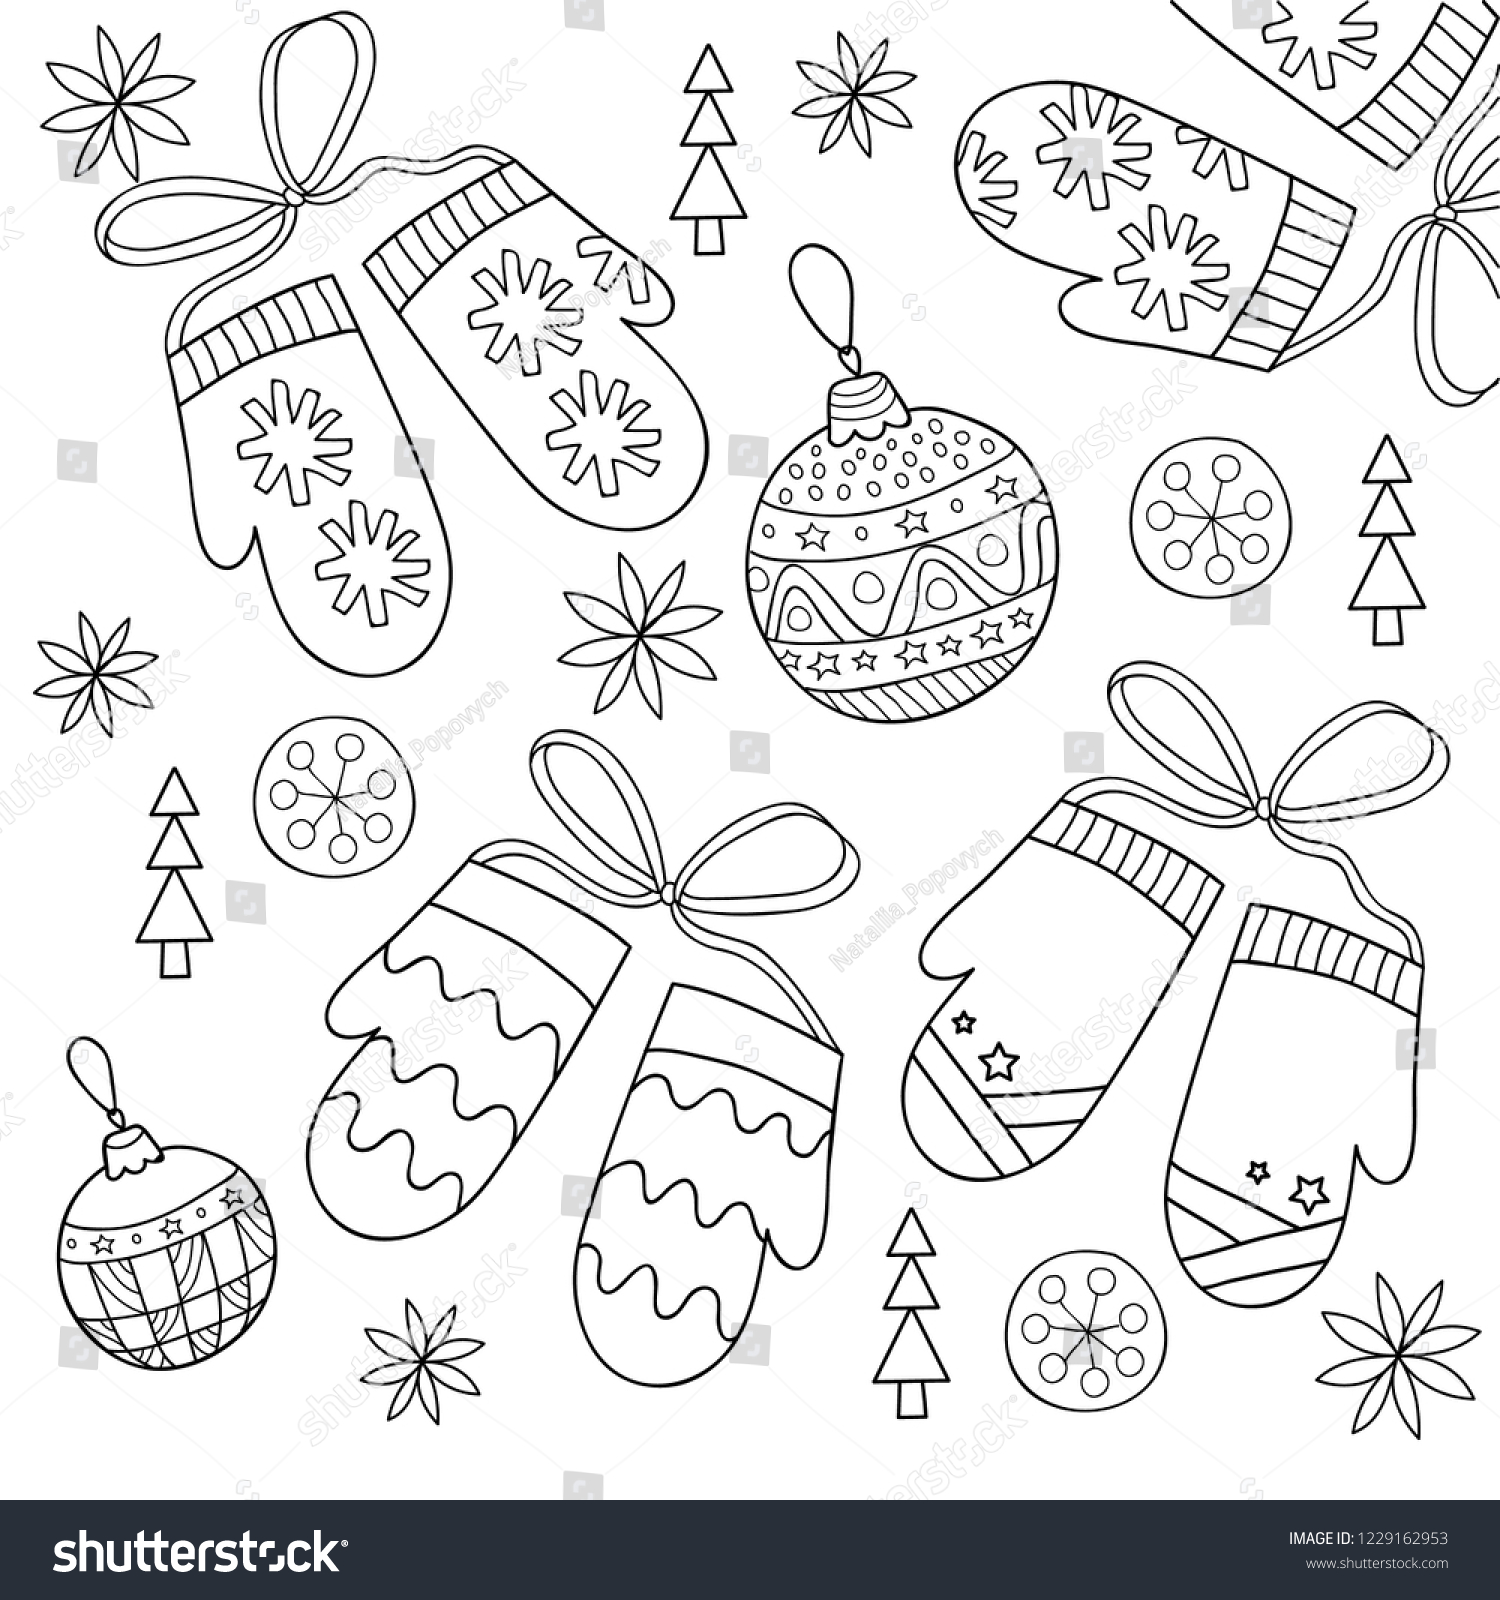 stock vector christmas coloring page with winter mittens snowflakes balls kids outline vector illustration